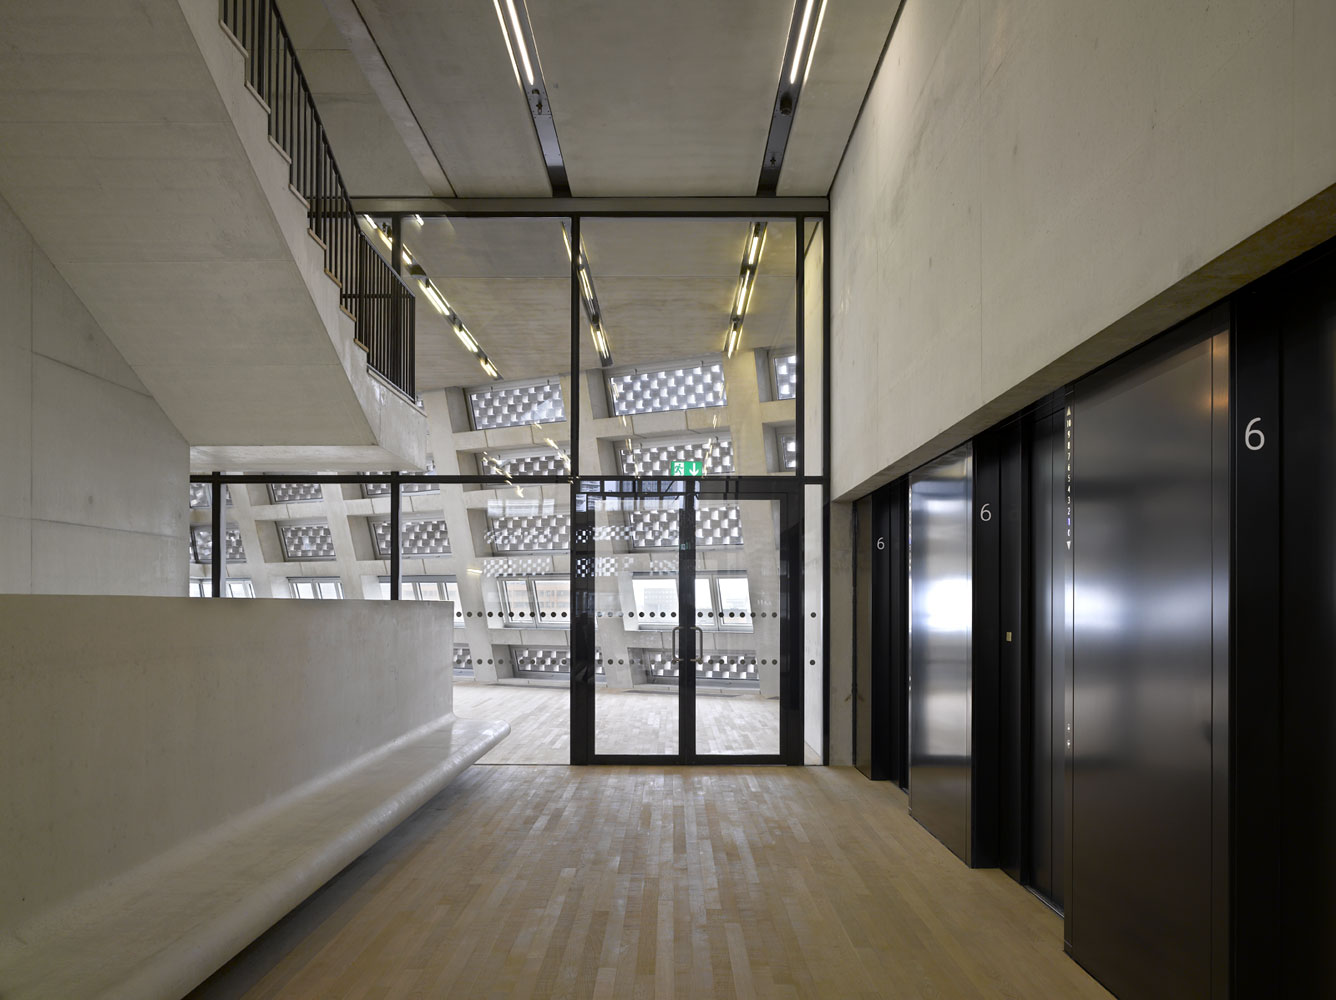 Roland halbe architectural photography for Switch house tate modern architecture